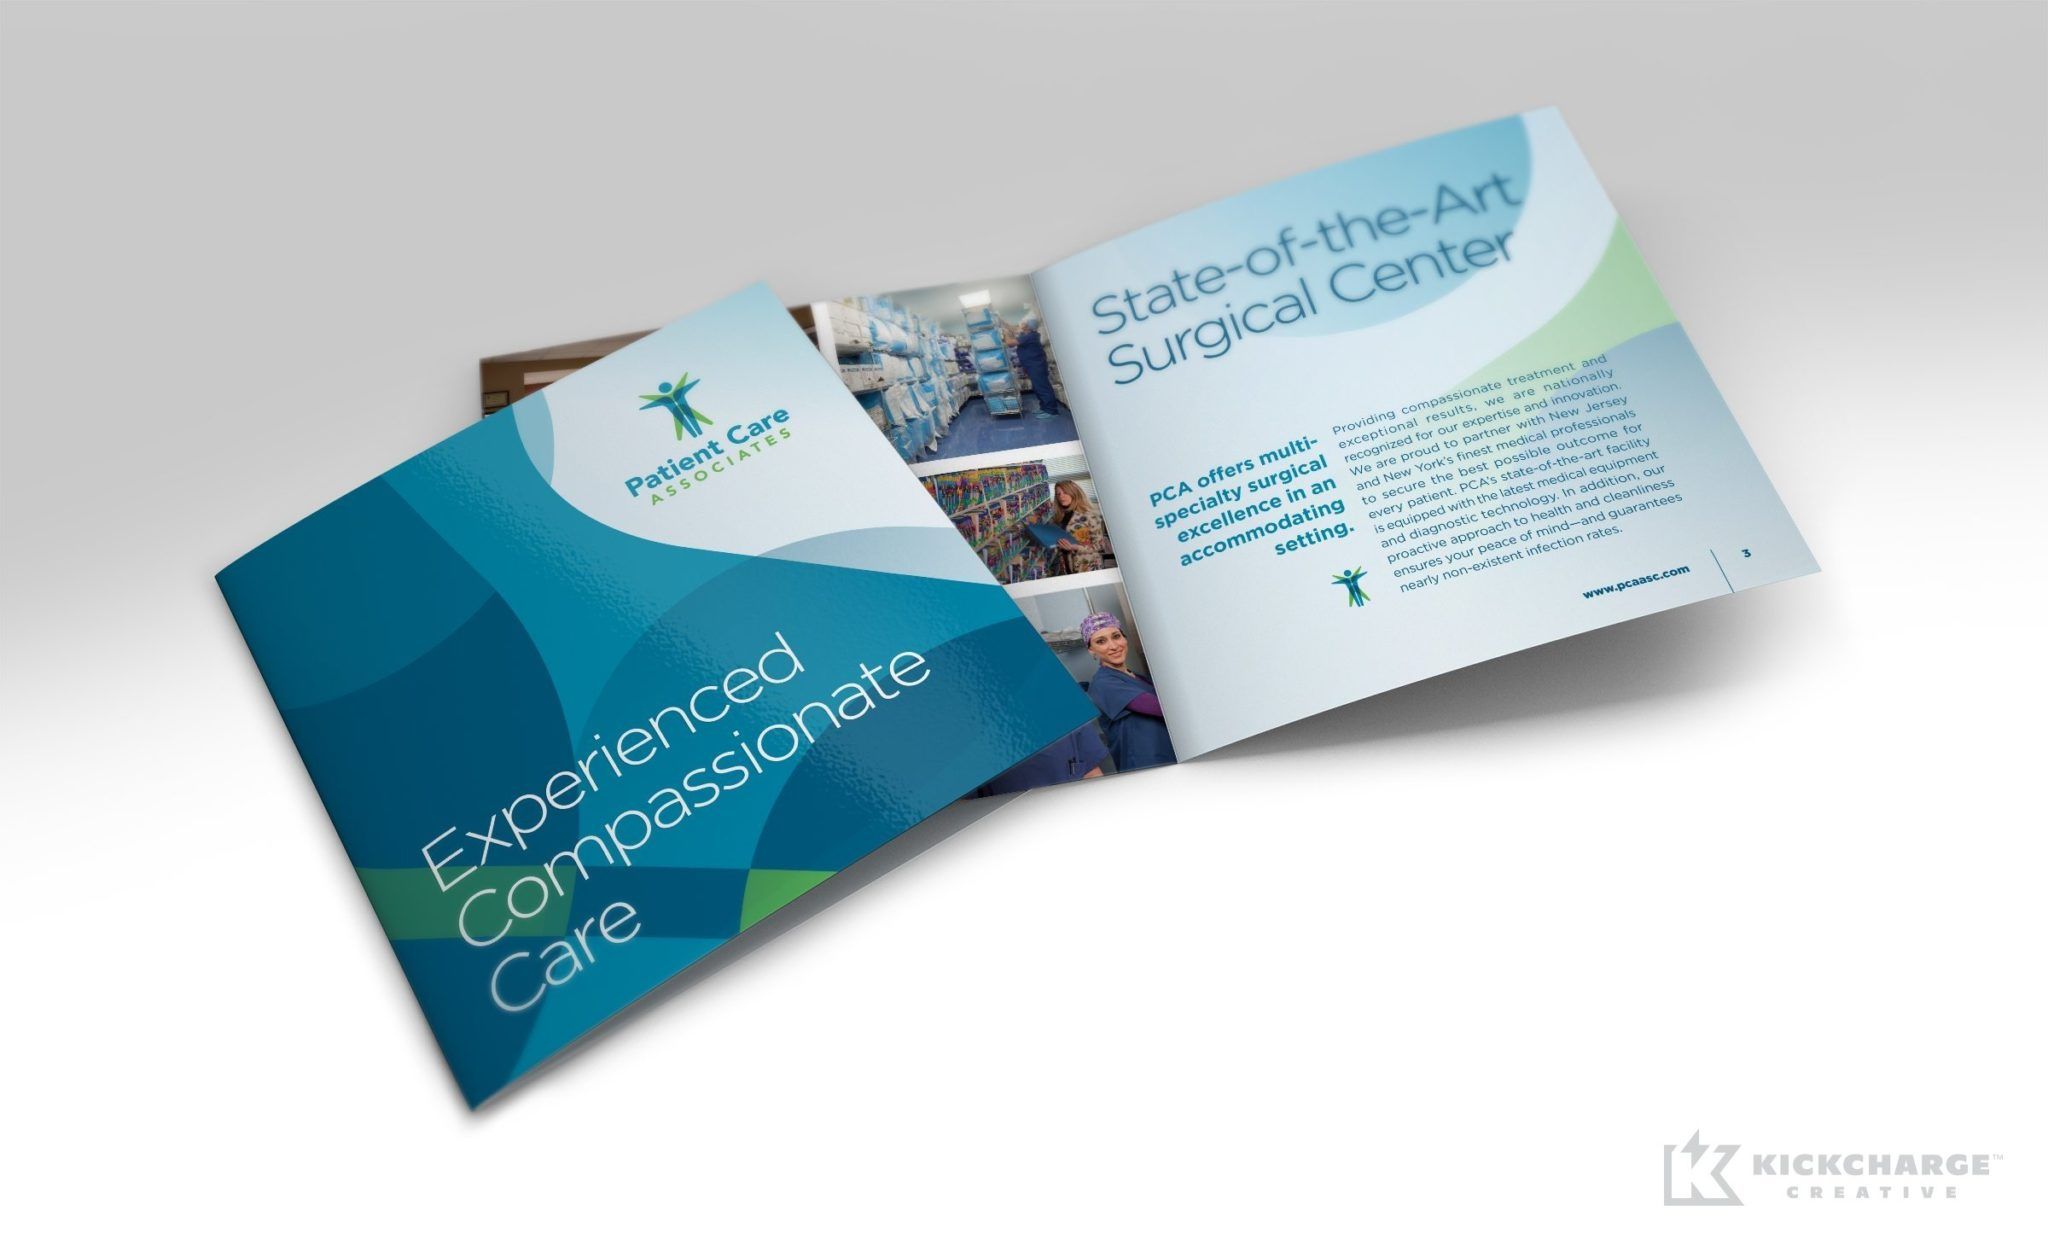 Multipage square booklet brochure design for Patient Care Associates, a surgical center in Englewood, New Jersey.